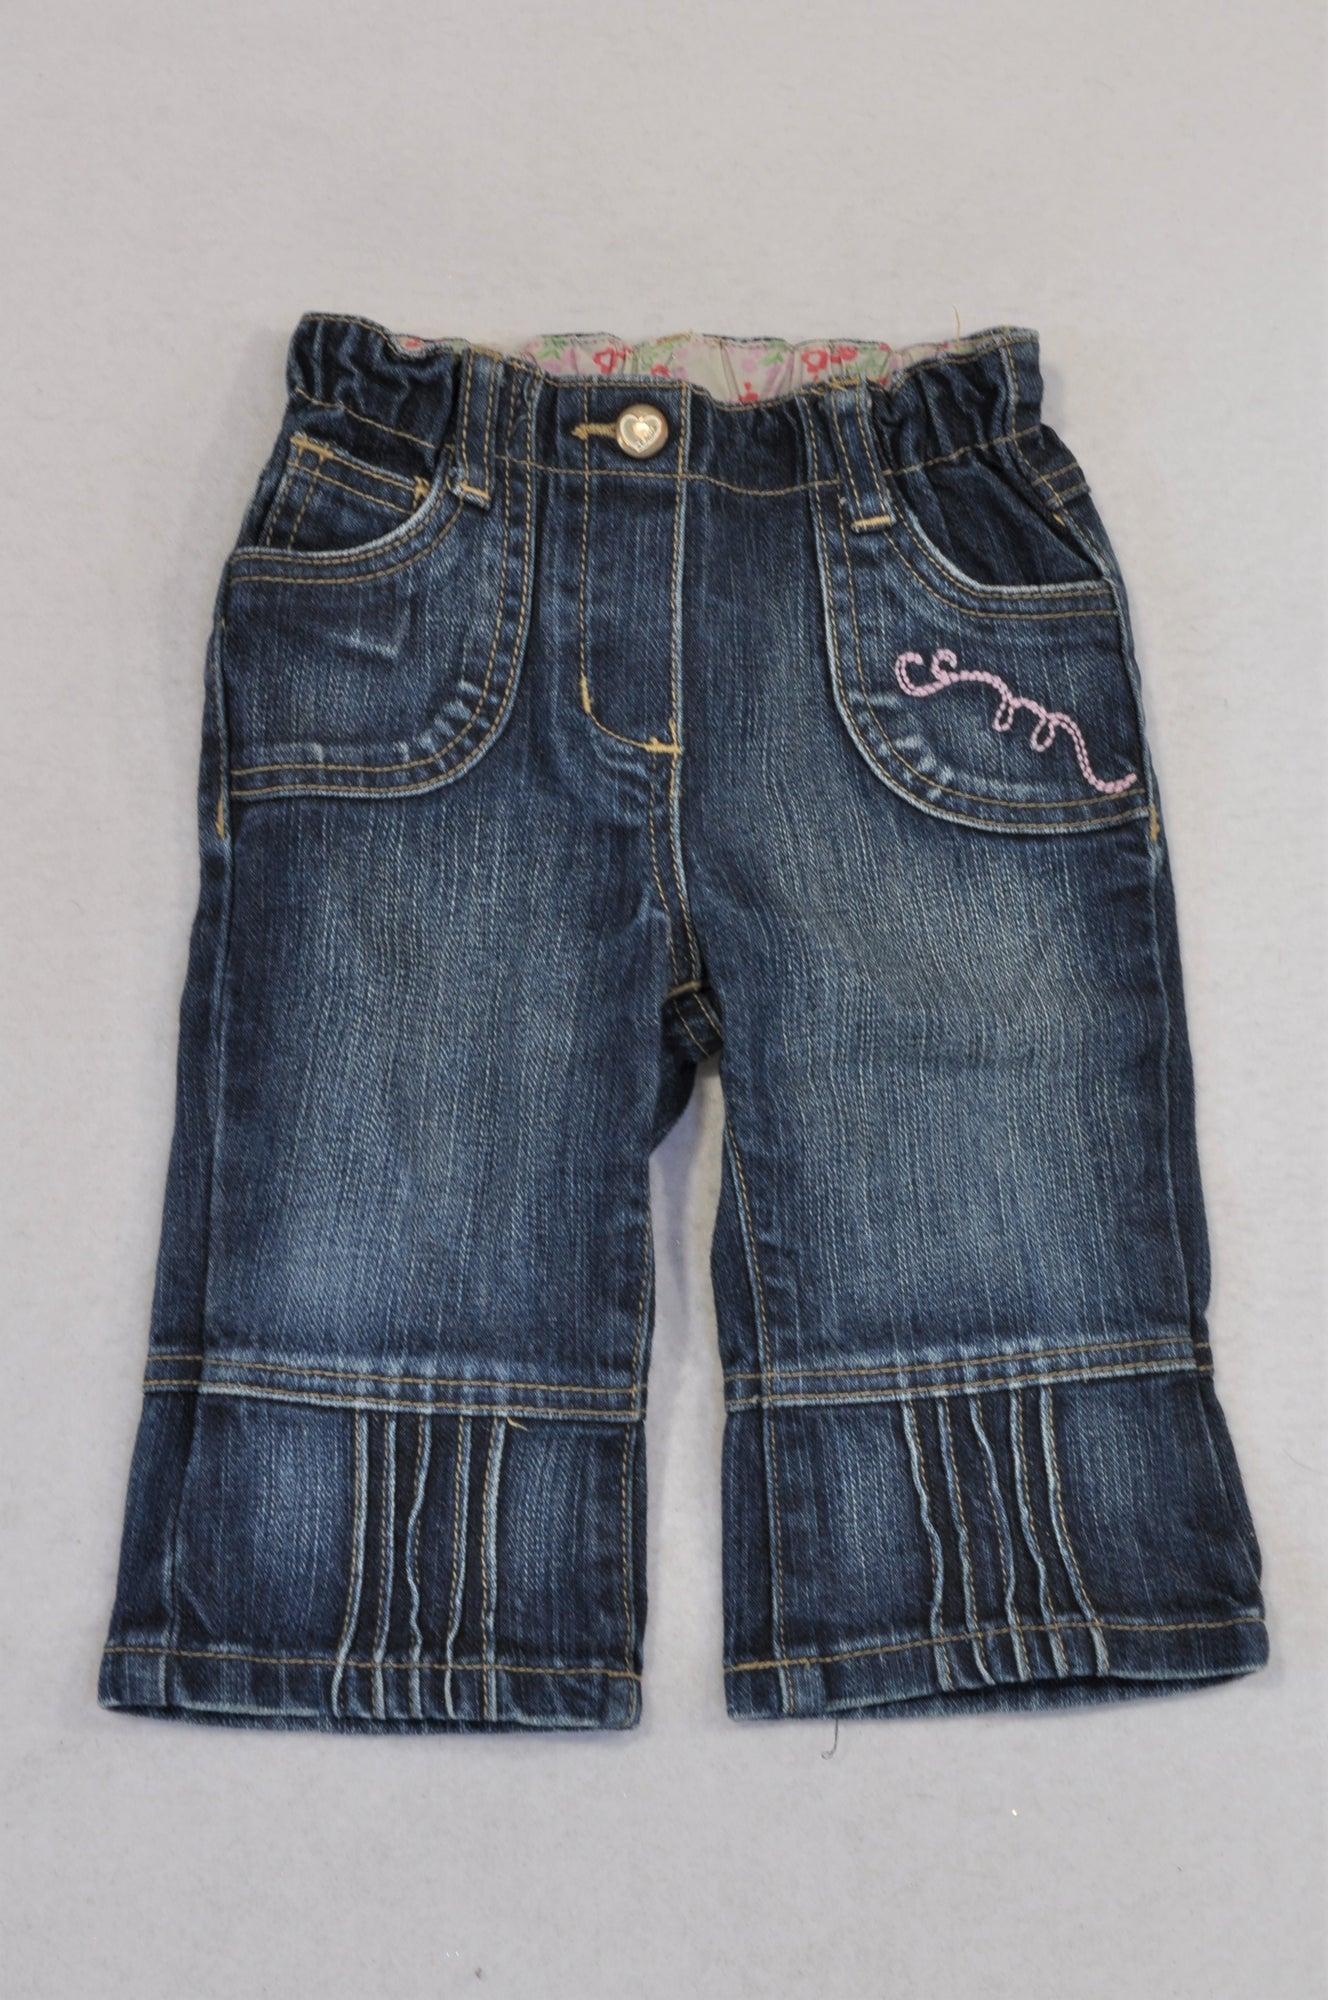 S.Oliver Denim Stone Washed Ruffle Trim Jeans Girls 3-6 months